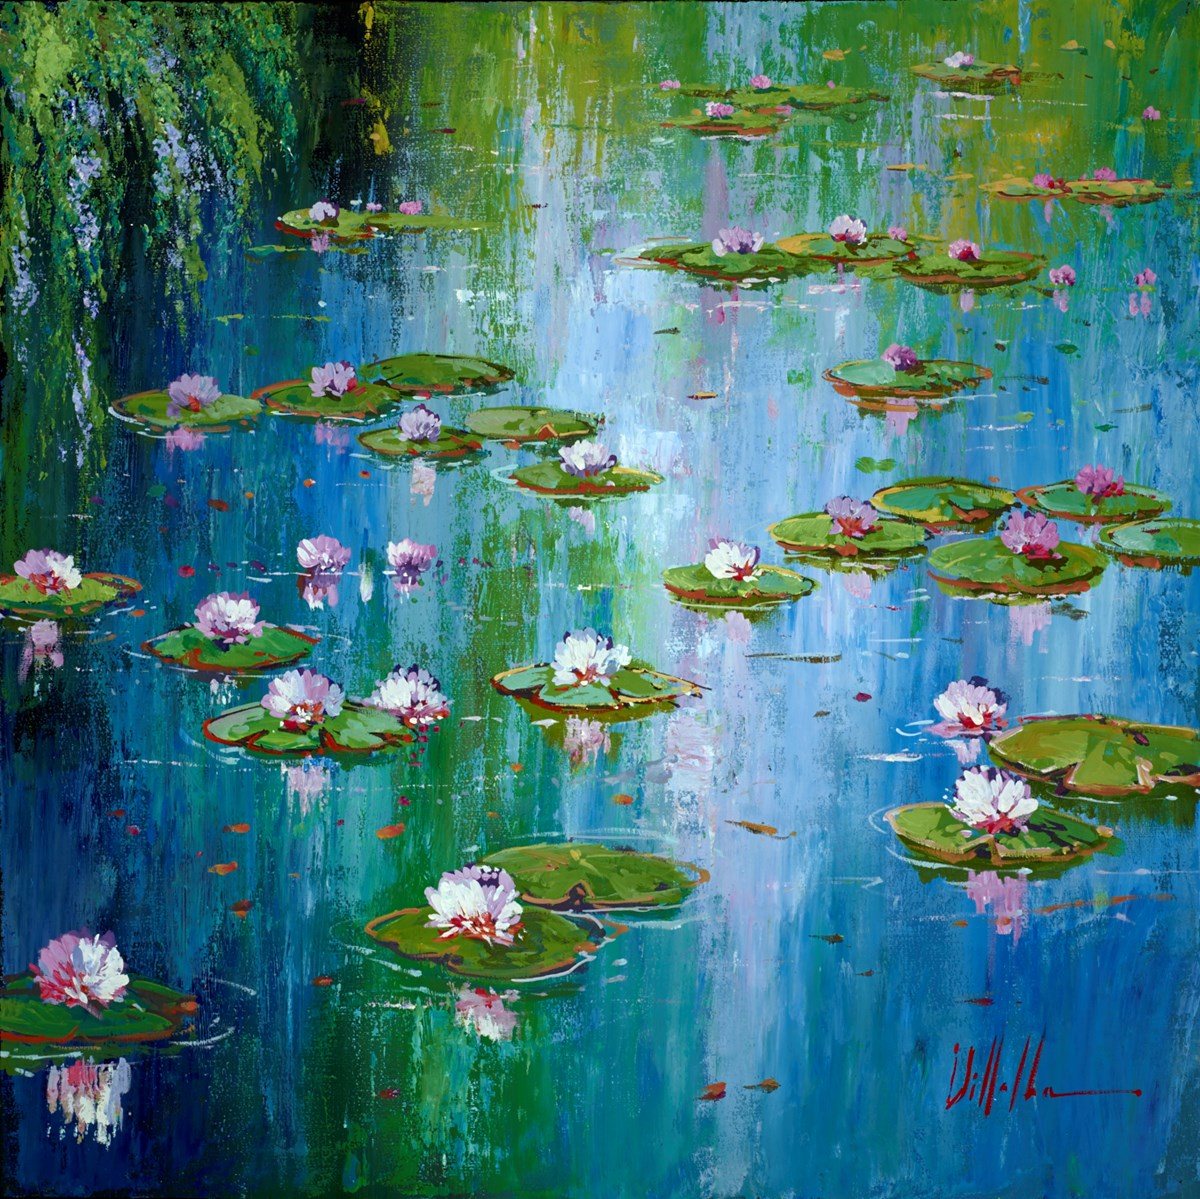 Lily Pads I by villalba -  sized 20x20 inches. Available from Whitewall Galleries